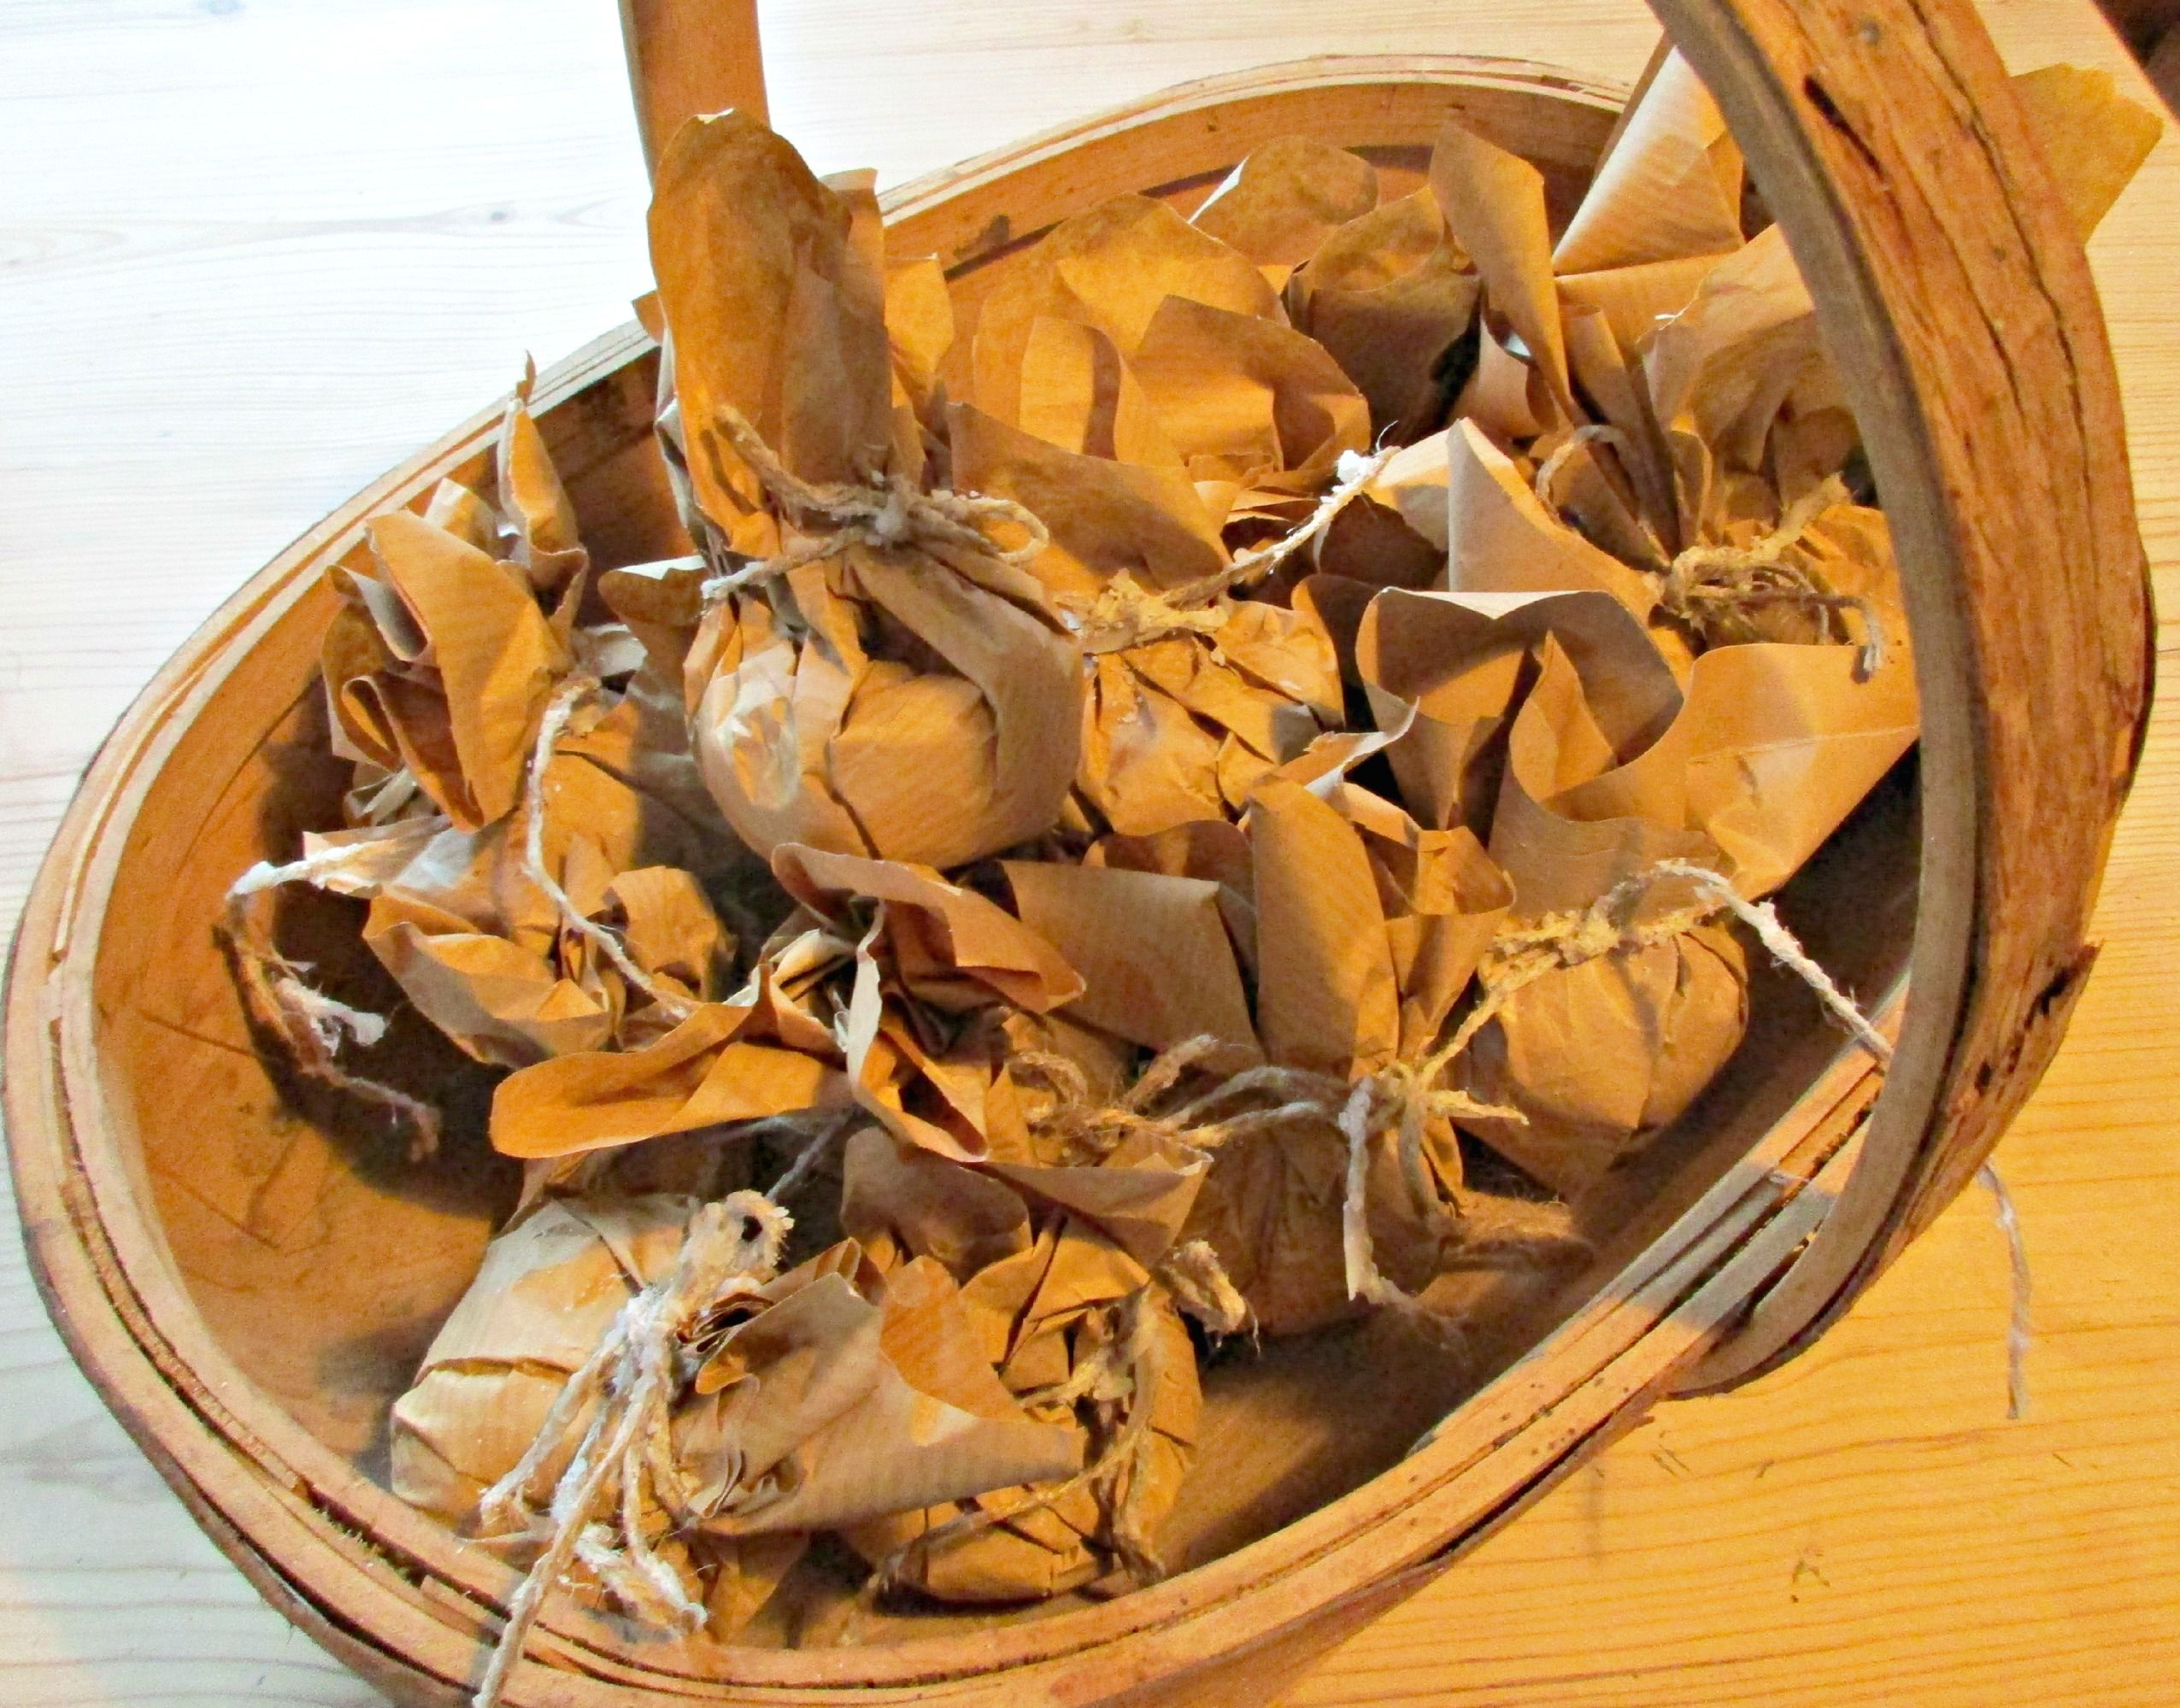 How to Make Homemade Firelighters from Recycled Materials